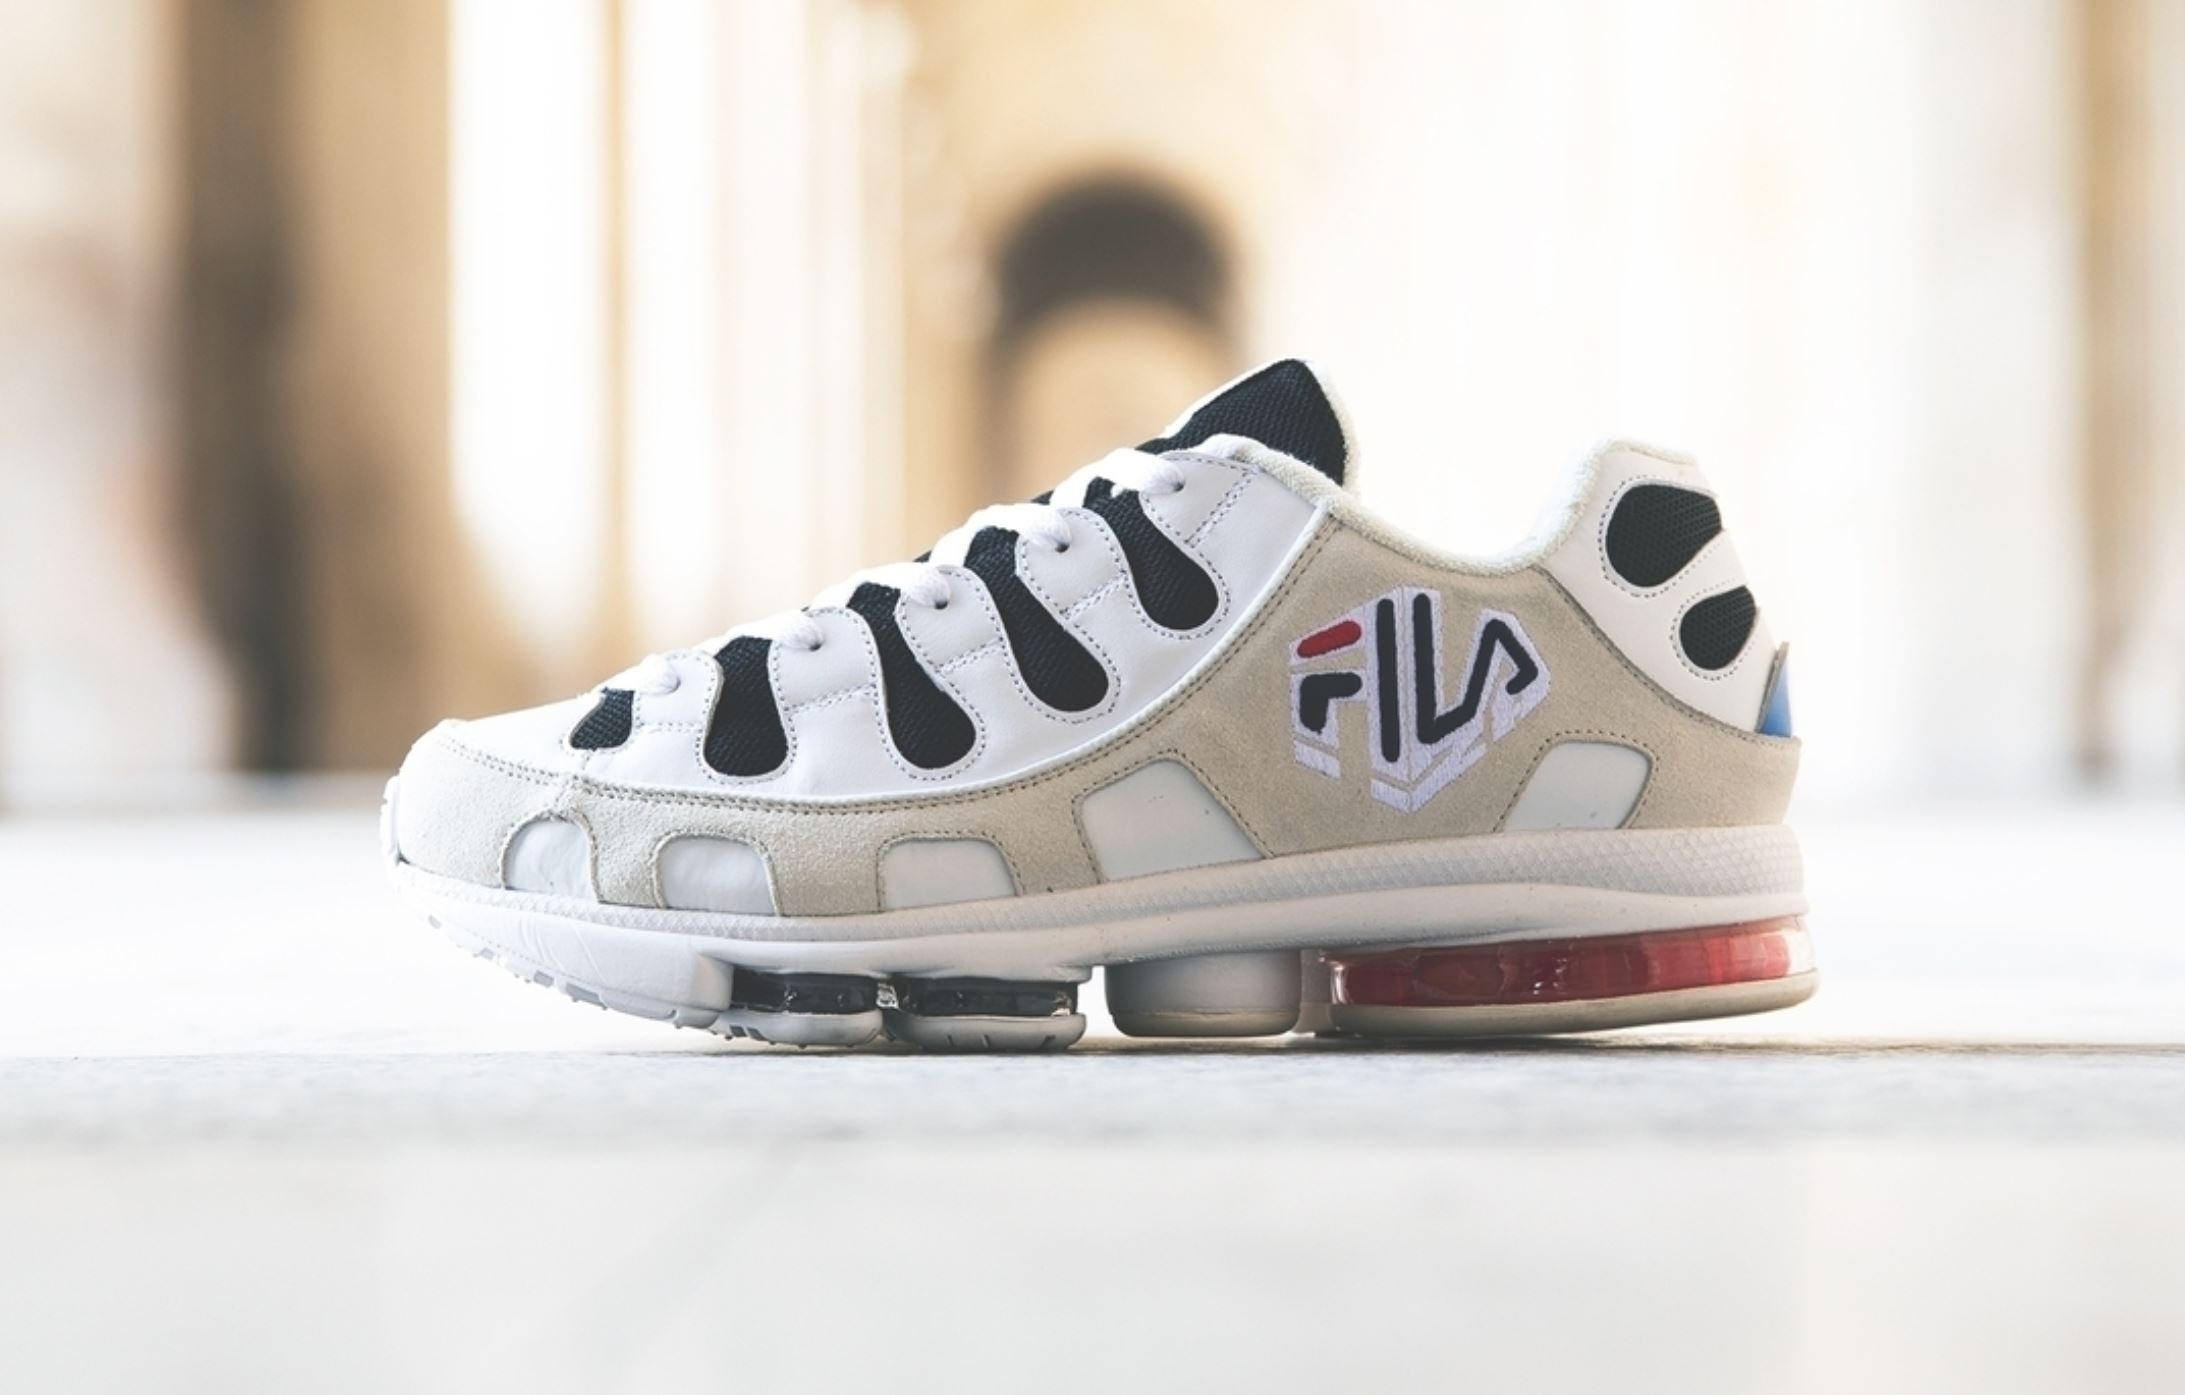 fila silva trainer footpatrol german silva